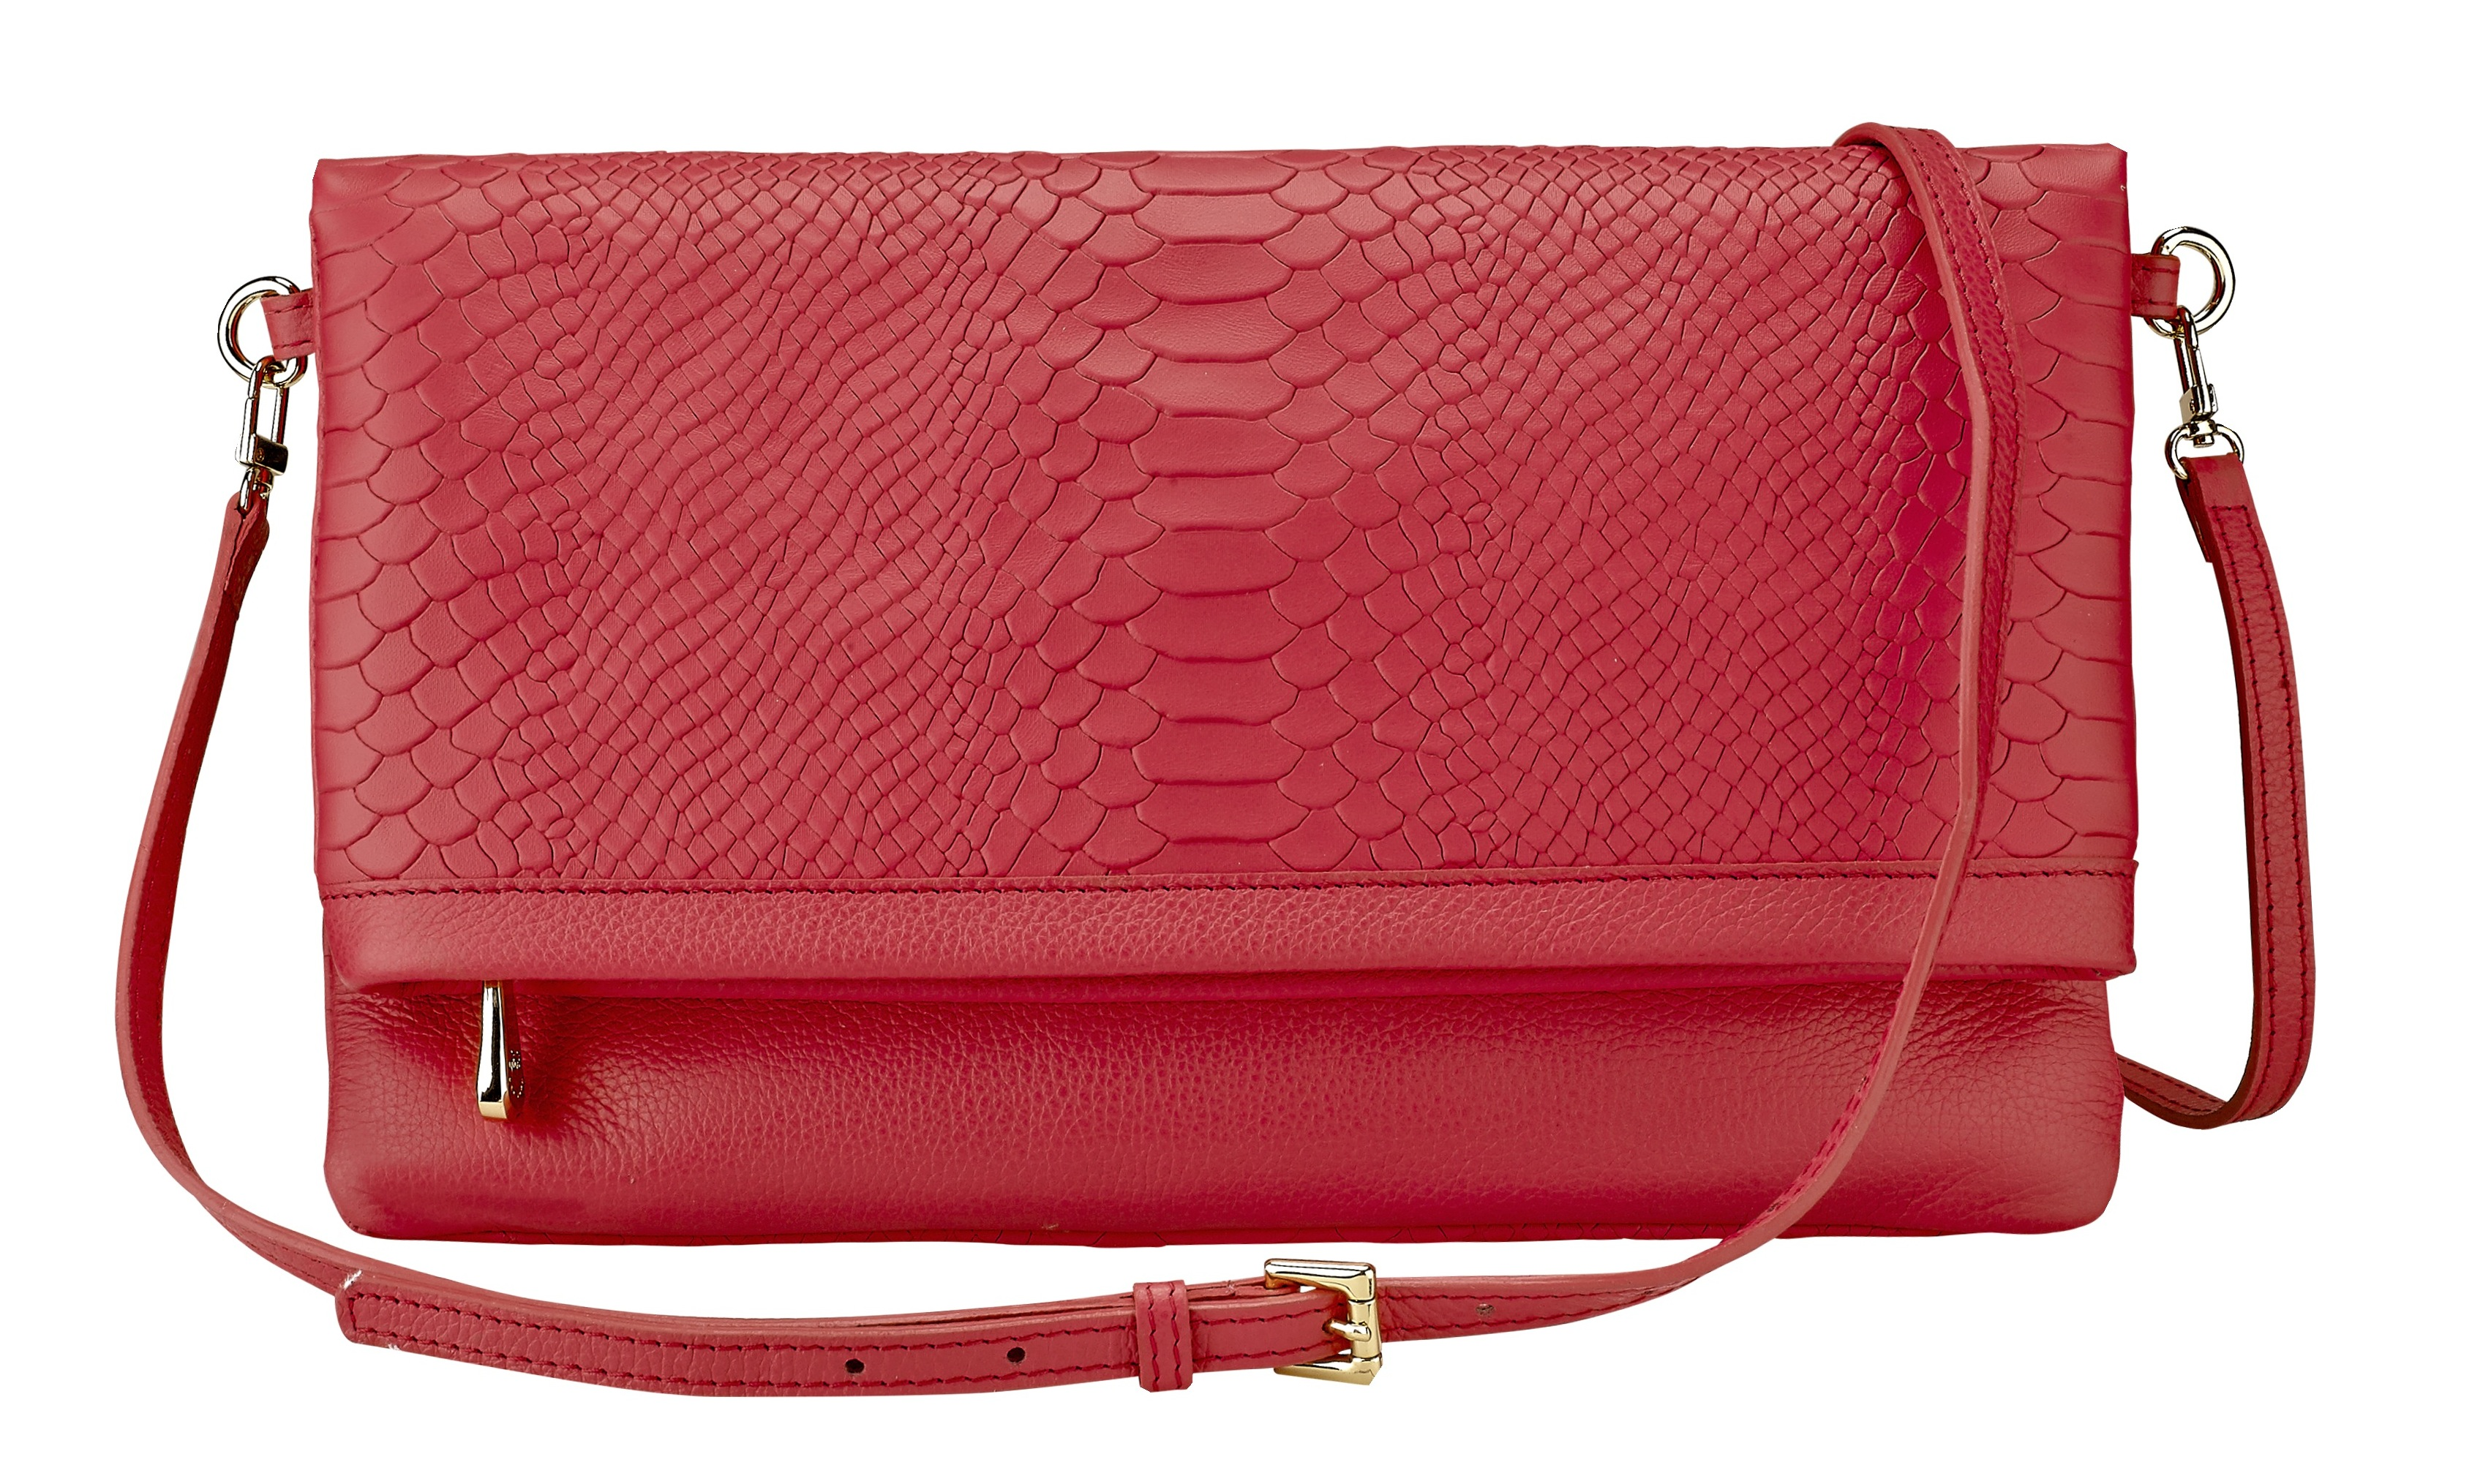 image: Carly Convertible Clutch, GiGi New York